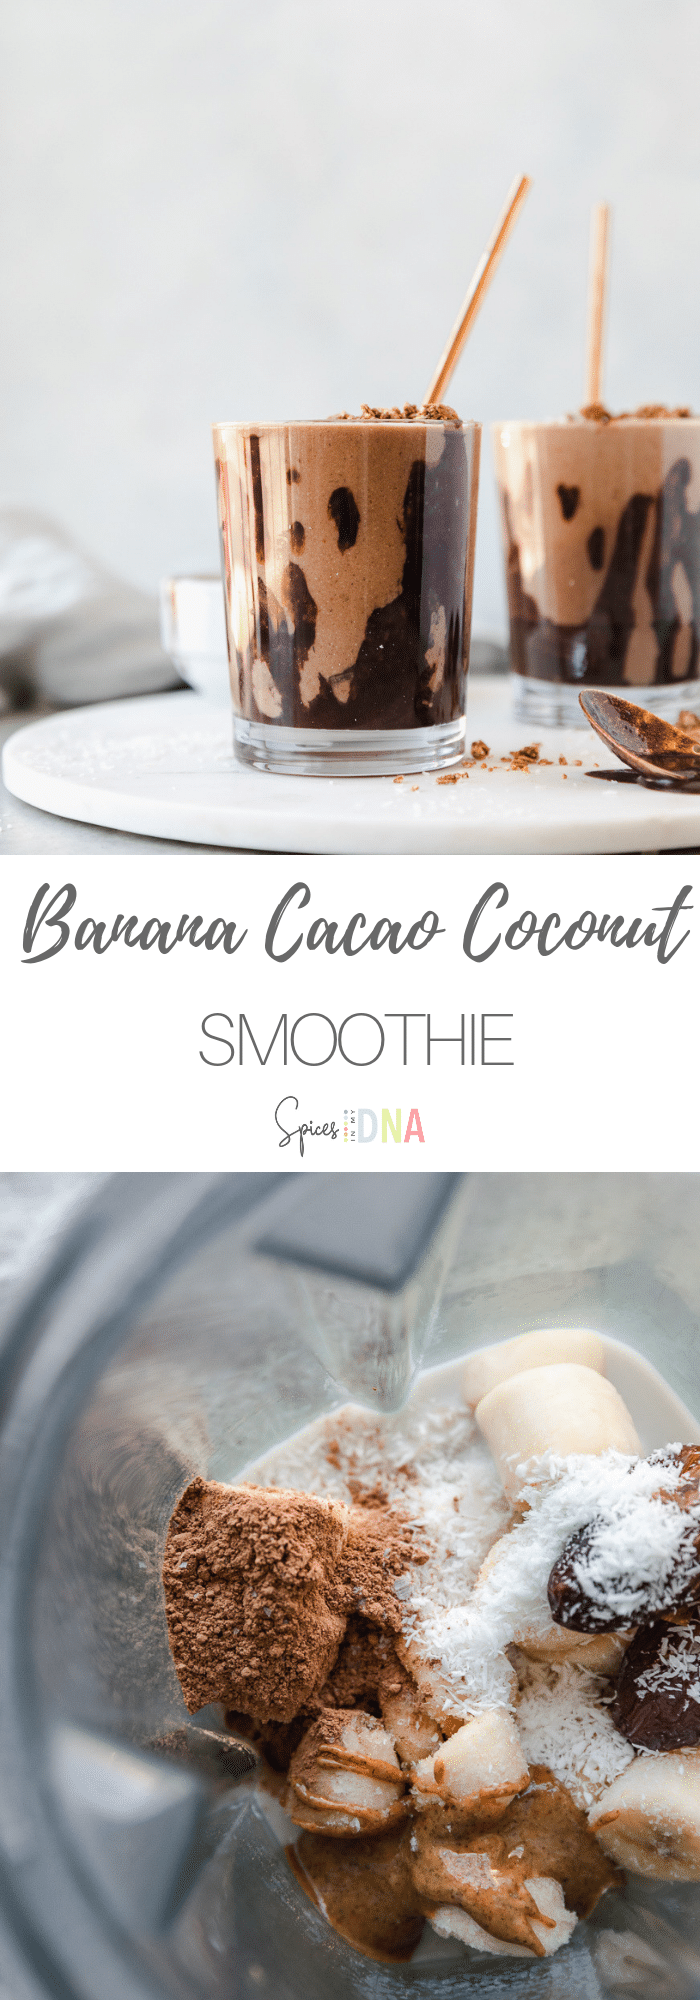 This Banana Cacao Coconut Smoothie is as close as you can get to a healthy milkshake! It's dairy free, gluten free, paleo, vegan, and it tastes like such a treat! The inside of the glass gets drizzled with a raw chocolate sauce made with just a few ingredients, and the smoothie is made with frozen banana, shredded coconut, dates, cacao powder, almond butter, and almond milk! #vegan #dairyfree #smoothie #paleo